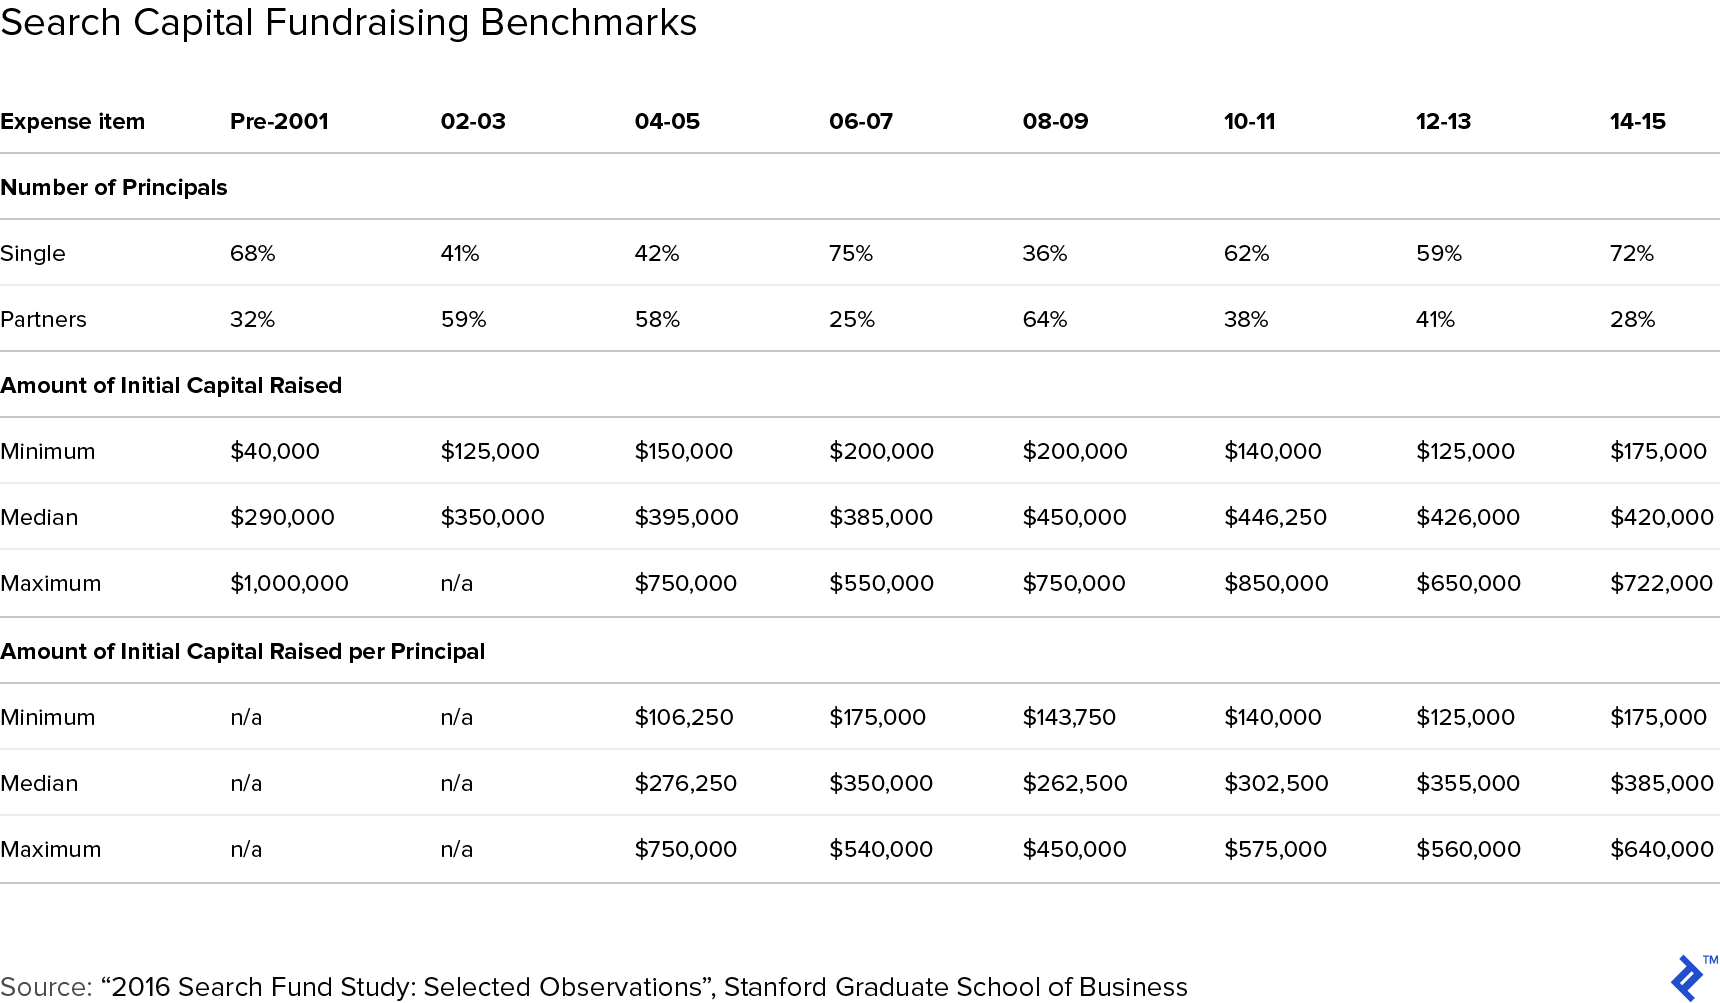 Search capital fundraising benchmarks